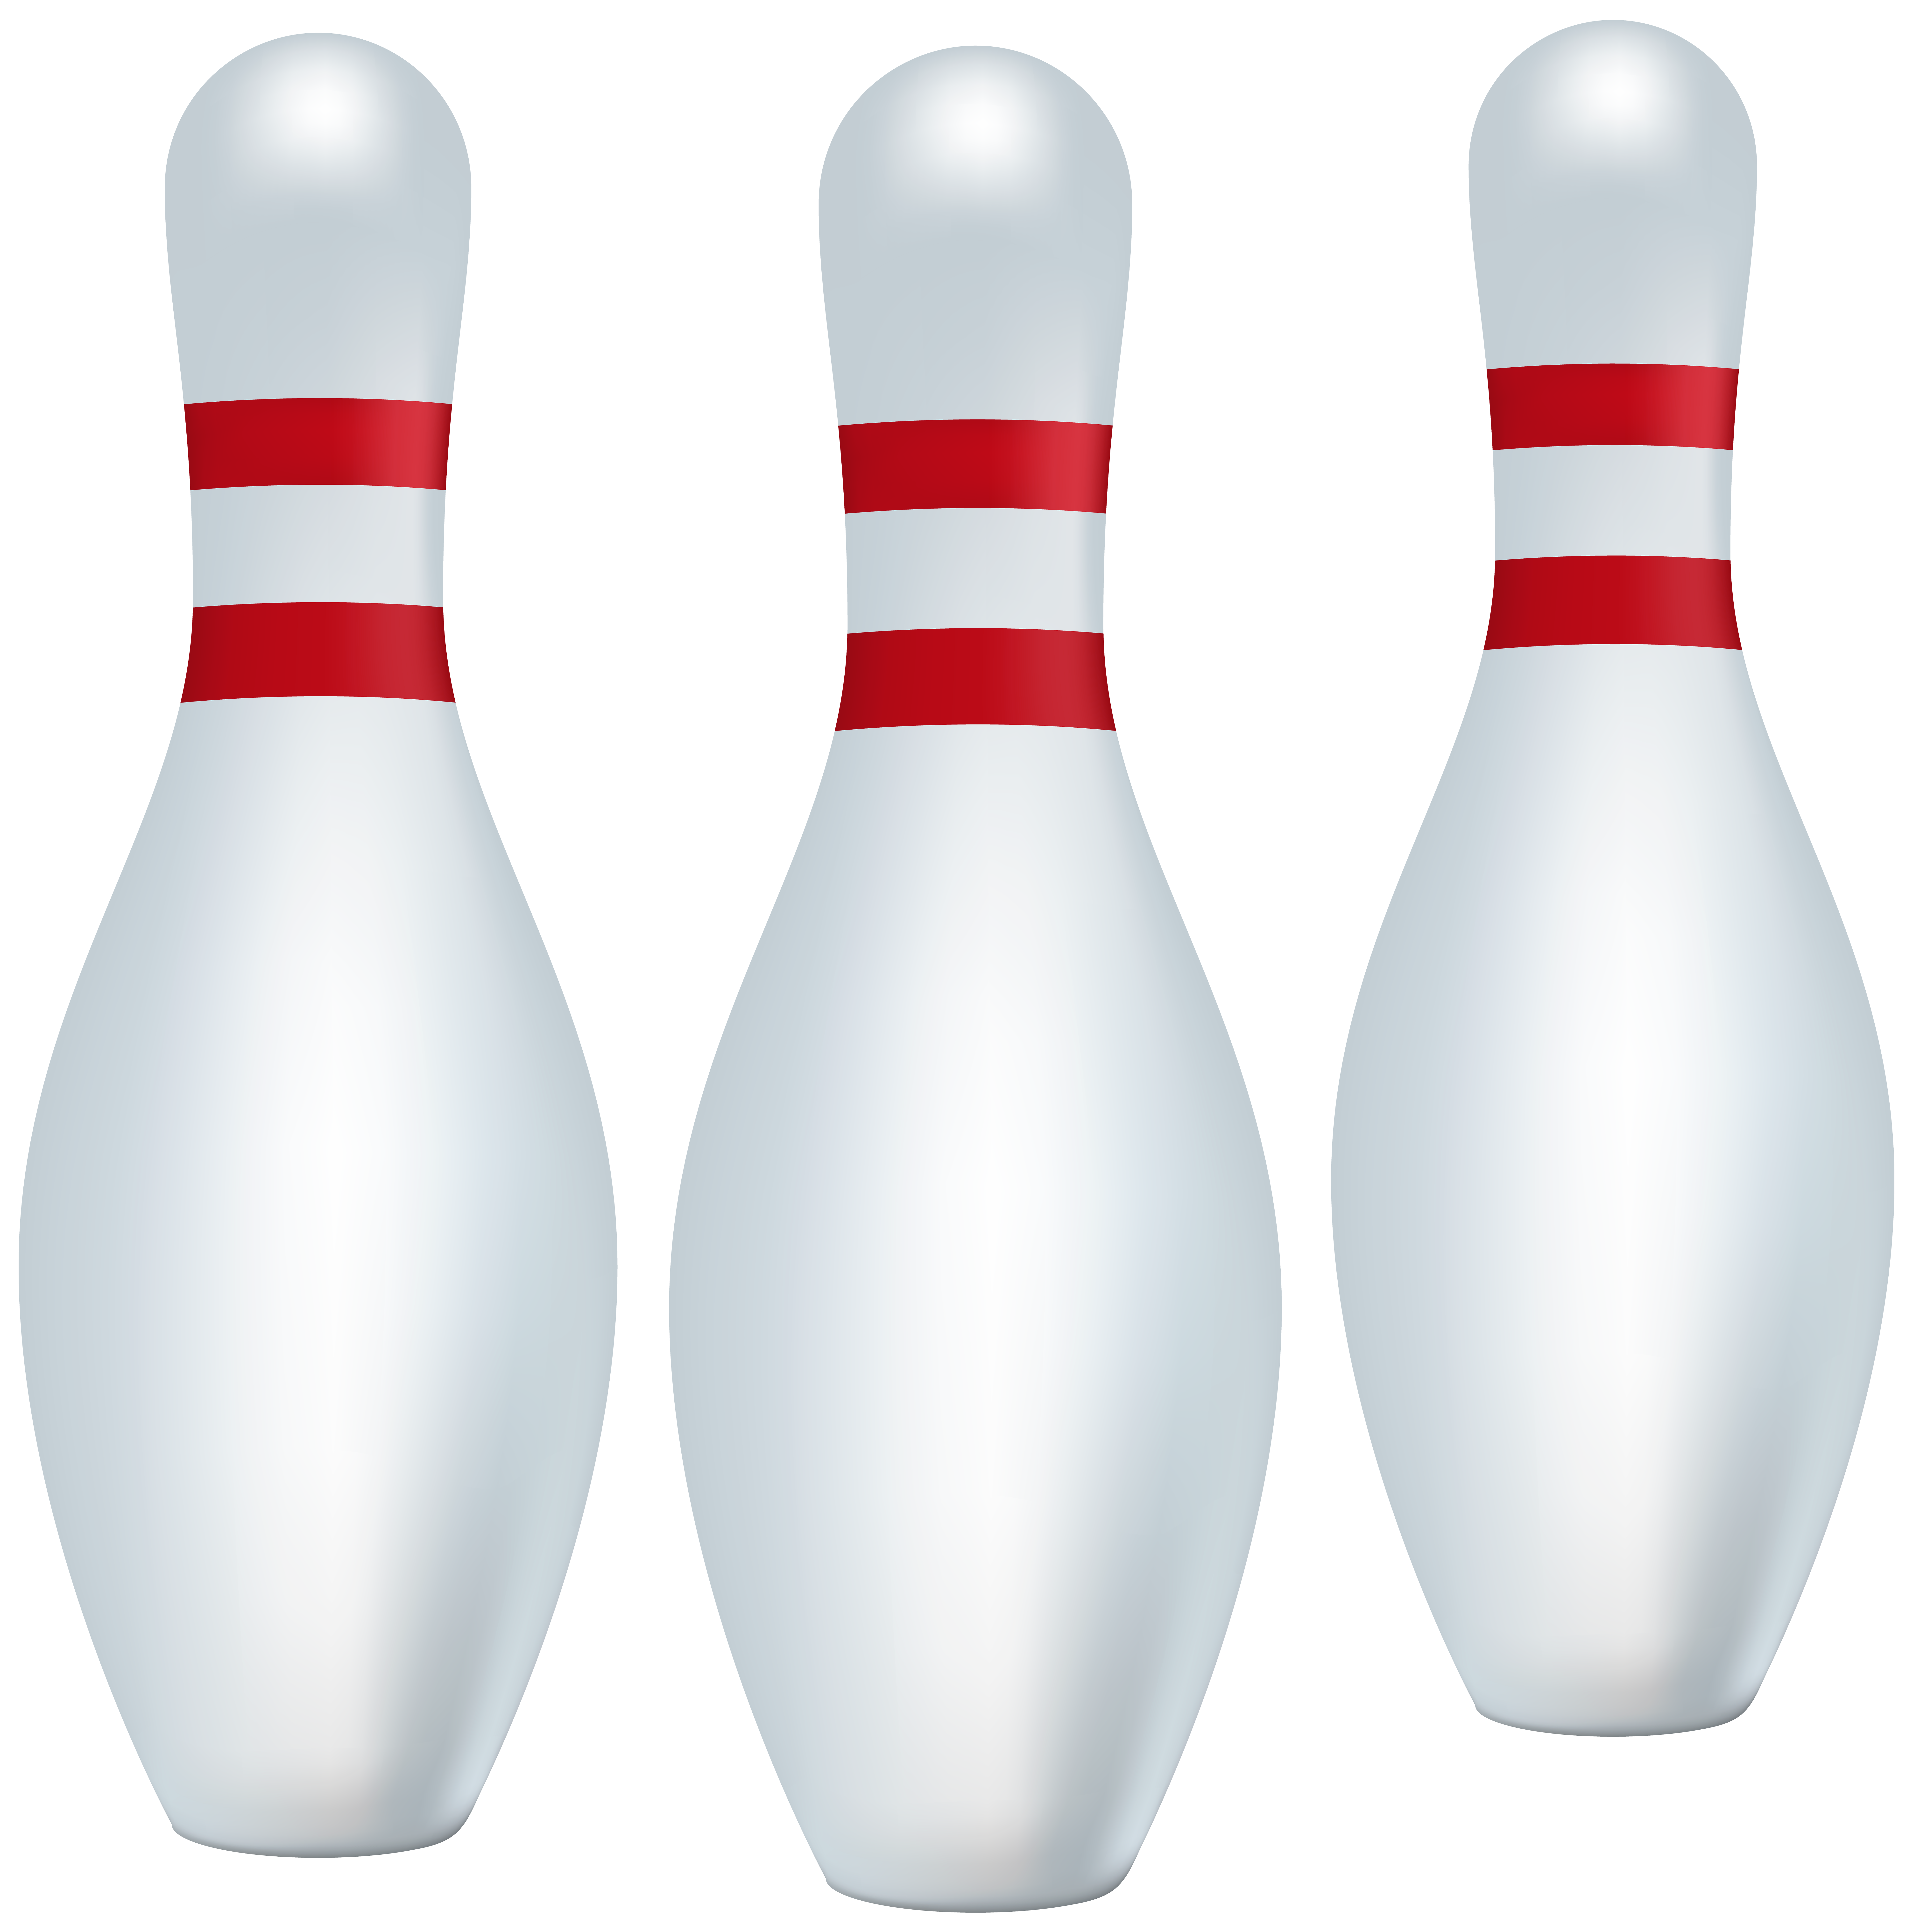 Bowling png clip art. Pins clipart graphic black and white stock